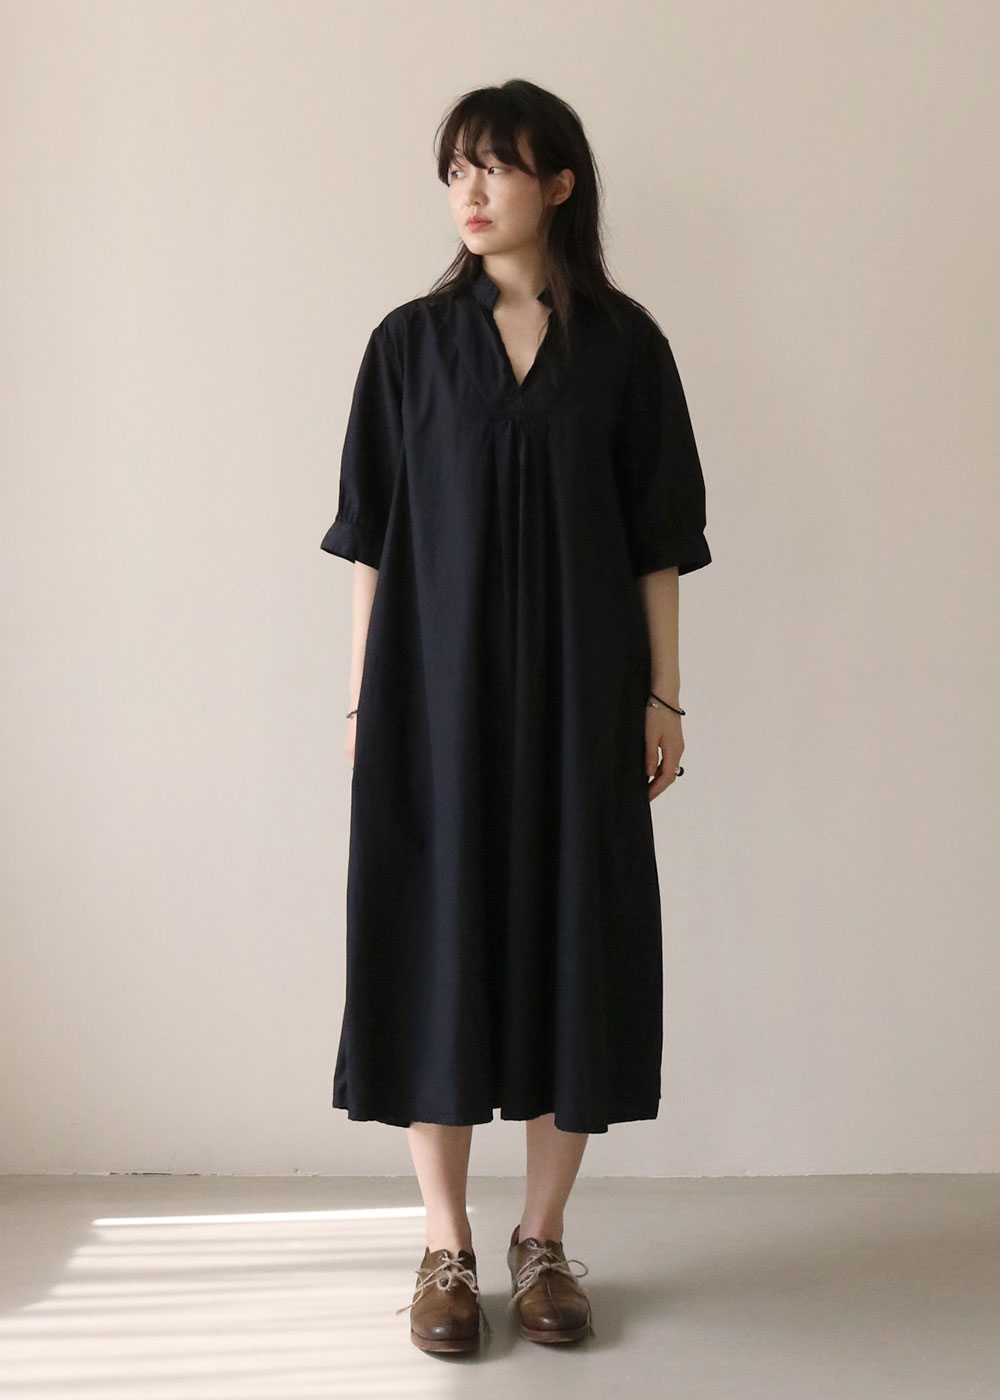 TYROL V COLLAR DRESS - black